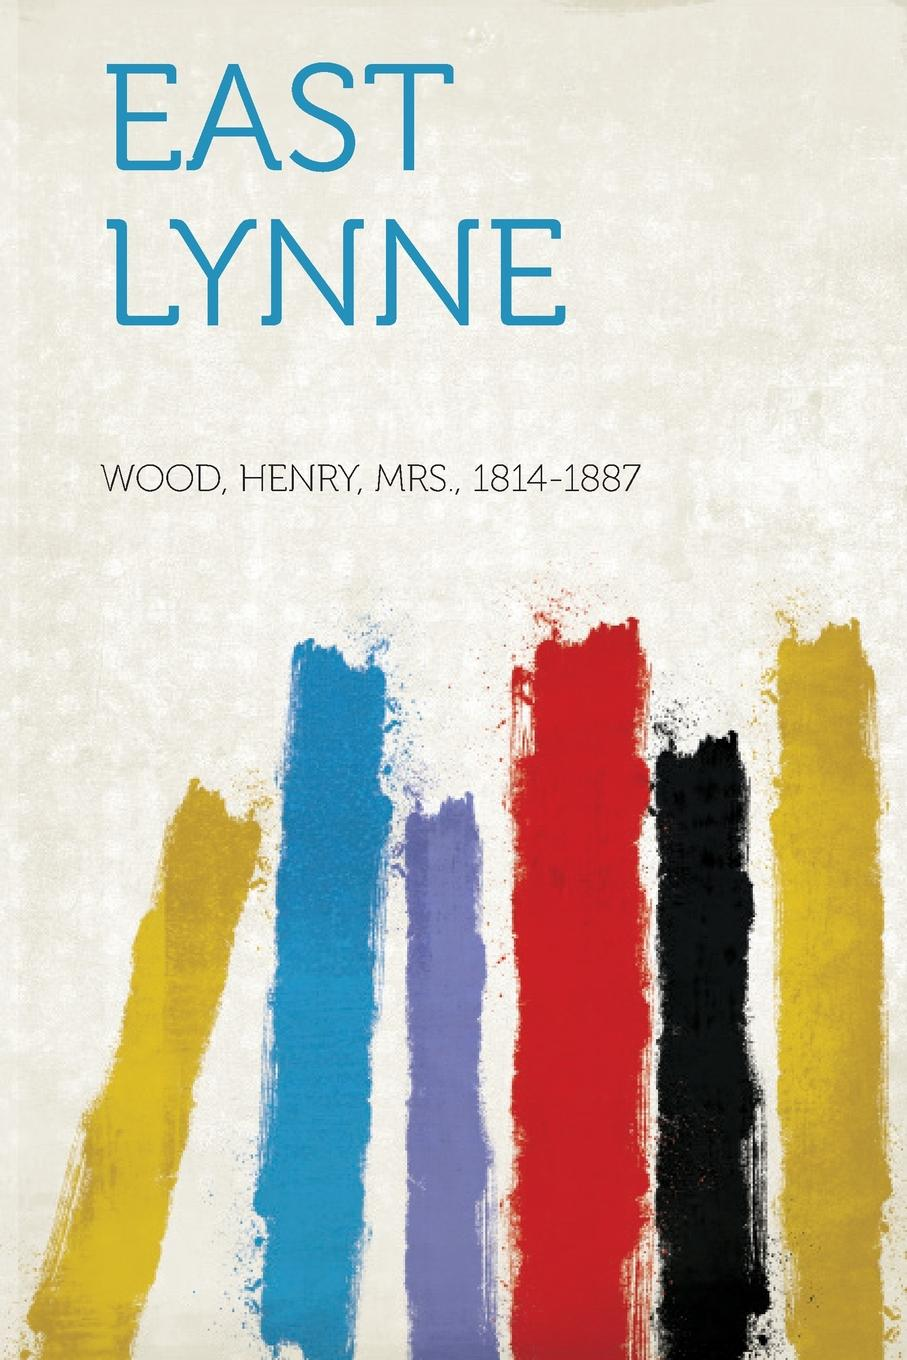 Wood Henry Mrs. 1814-1887 East Lynne henry wood east lynne